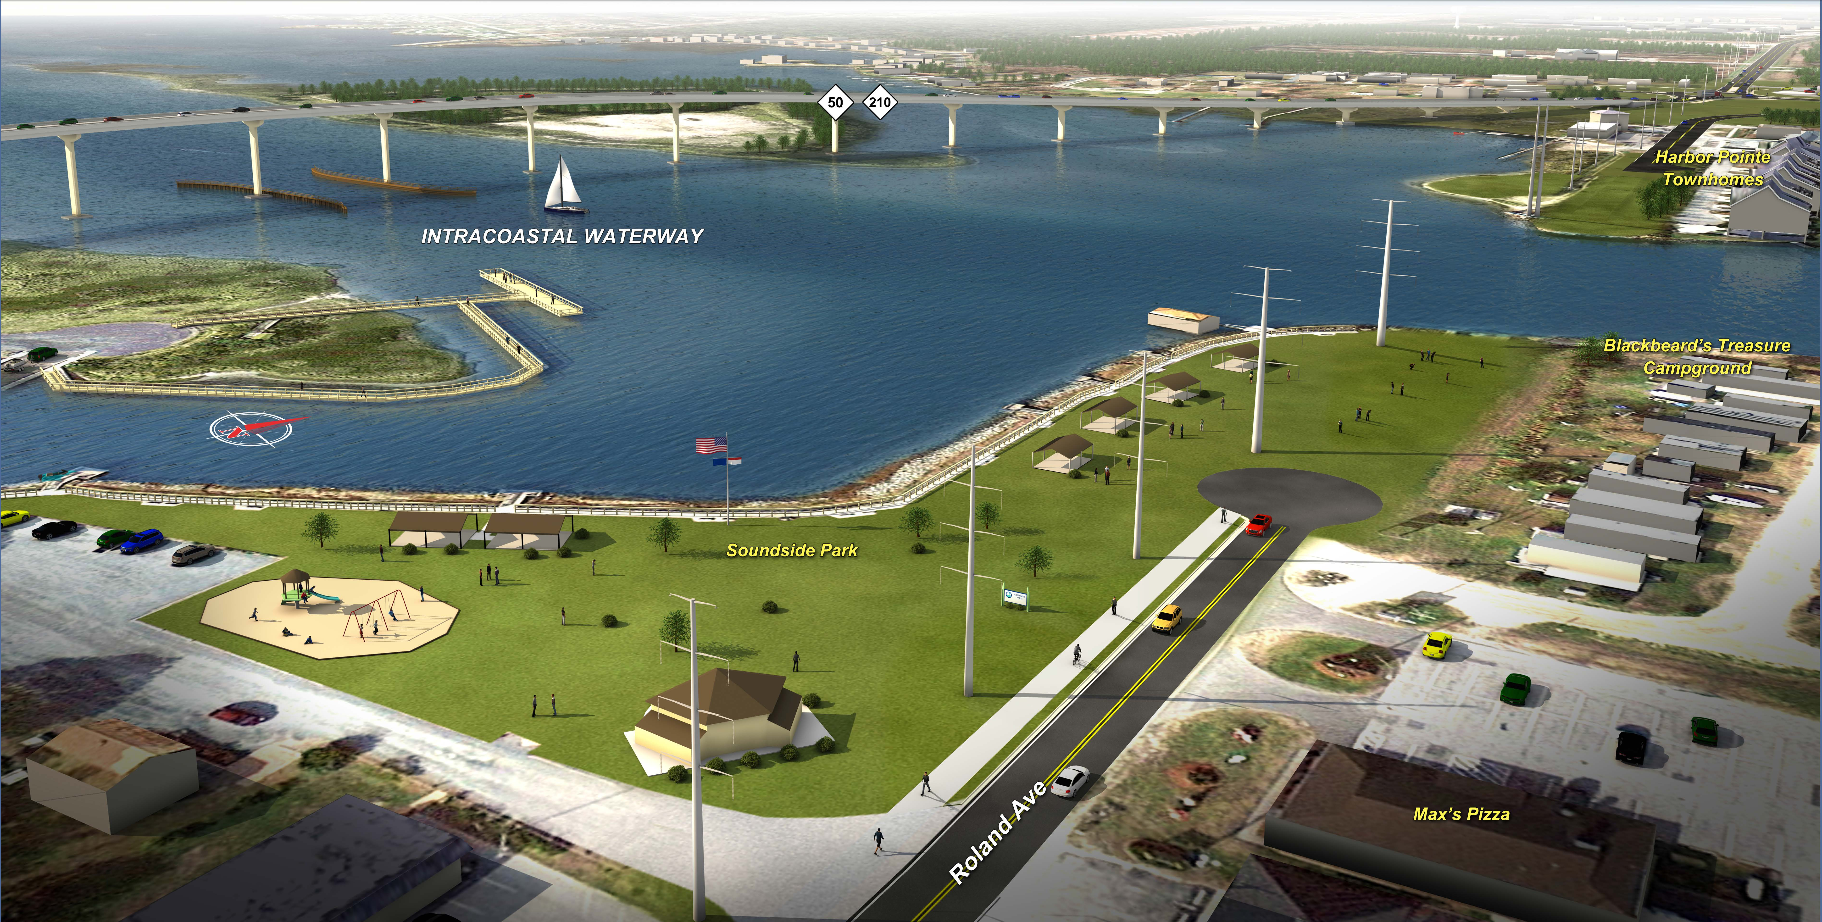 Artistic Rendering Of The New Bridge Looking Over Soundside Park Topsail Island Surf City Topsail Island Surf City Nc